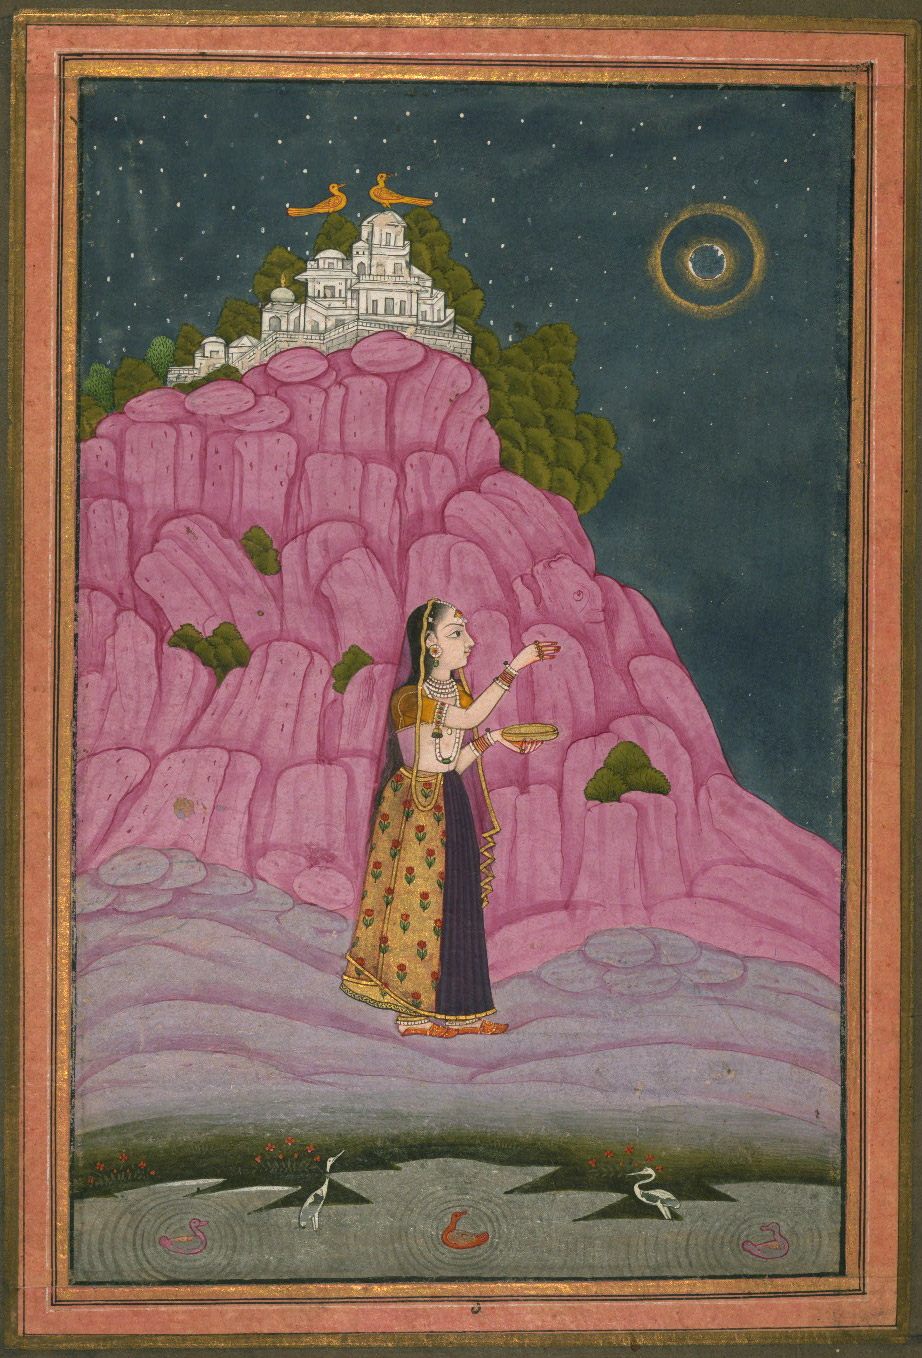 Unidentified Ragini, A Lady Performing a Ritual at Night with a Full Moon - Miniature Painting, Ragamala series, 19th Century